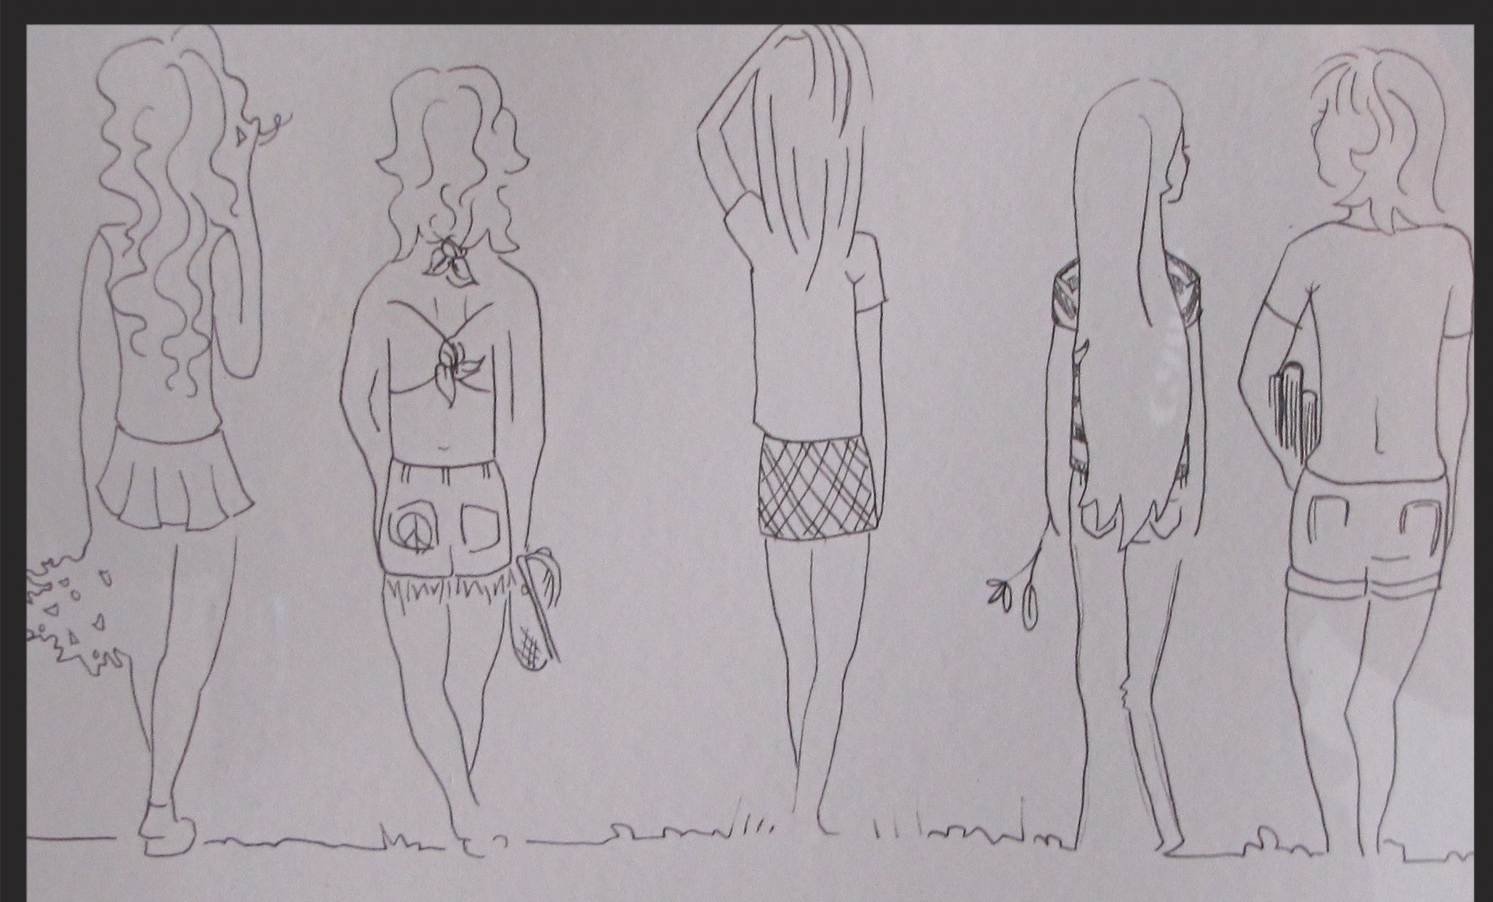 """""""WEST GATE GIRLS""""    A drawing by my artist daughter Hannah several years ago, from all the stories she's heard about THE WEST GATE GIRLS., Diane in cheering uniform, Me in halter top, Marci, and our dear friends, Lynne of the beautiful flowing hair and our beloved friend Vicki, who we lost to colon cancer in 2009.  *LostTraderArt""""on Facebook"""